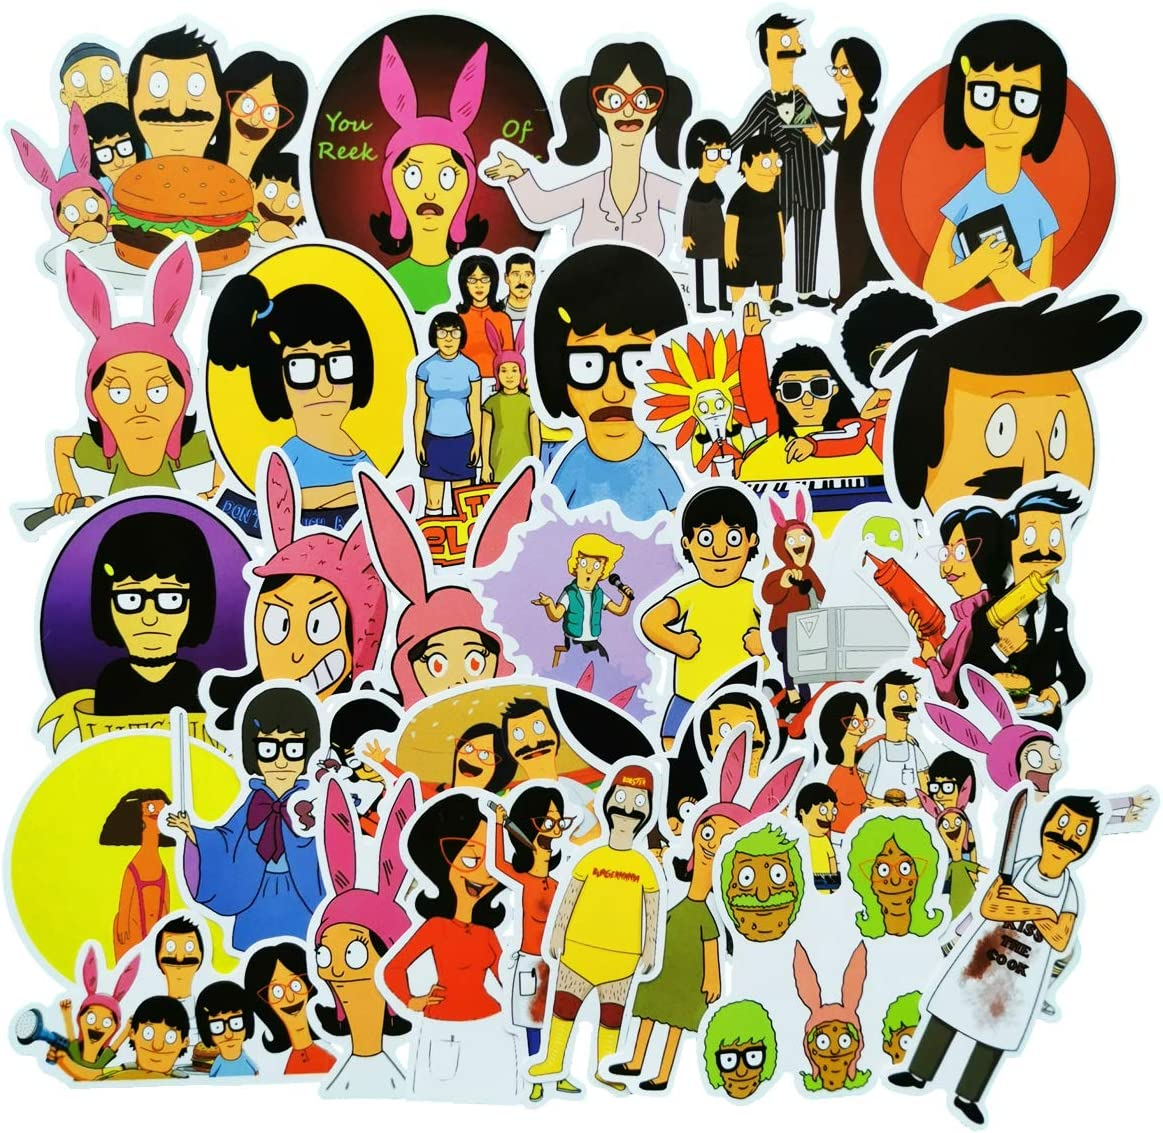 Bob's Burgers Waterproof Stickers/Decals (34 pcs) of Anime Cartoon for Laptop Skateboard Snowboard Water Bottle Phone Car Bicycle Luggage Guitar Computer PS4(Bob's Burgers)